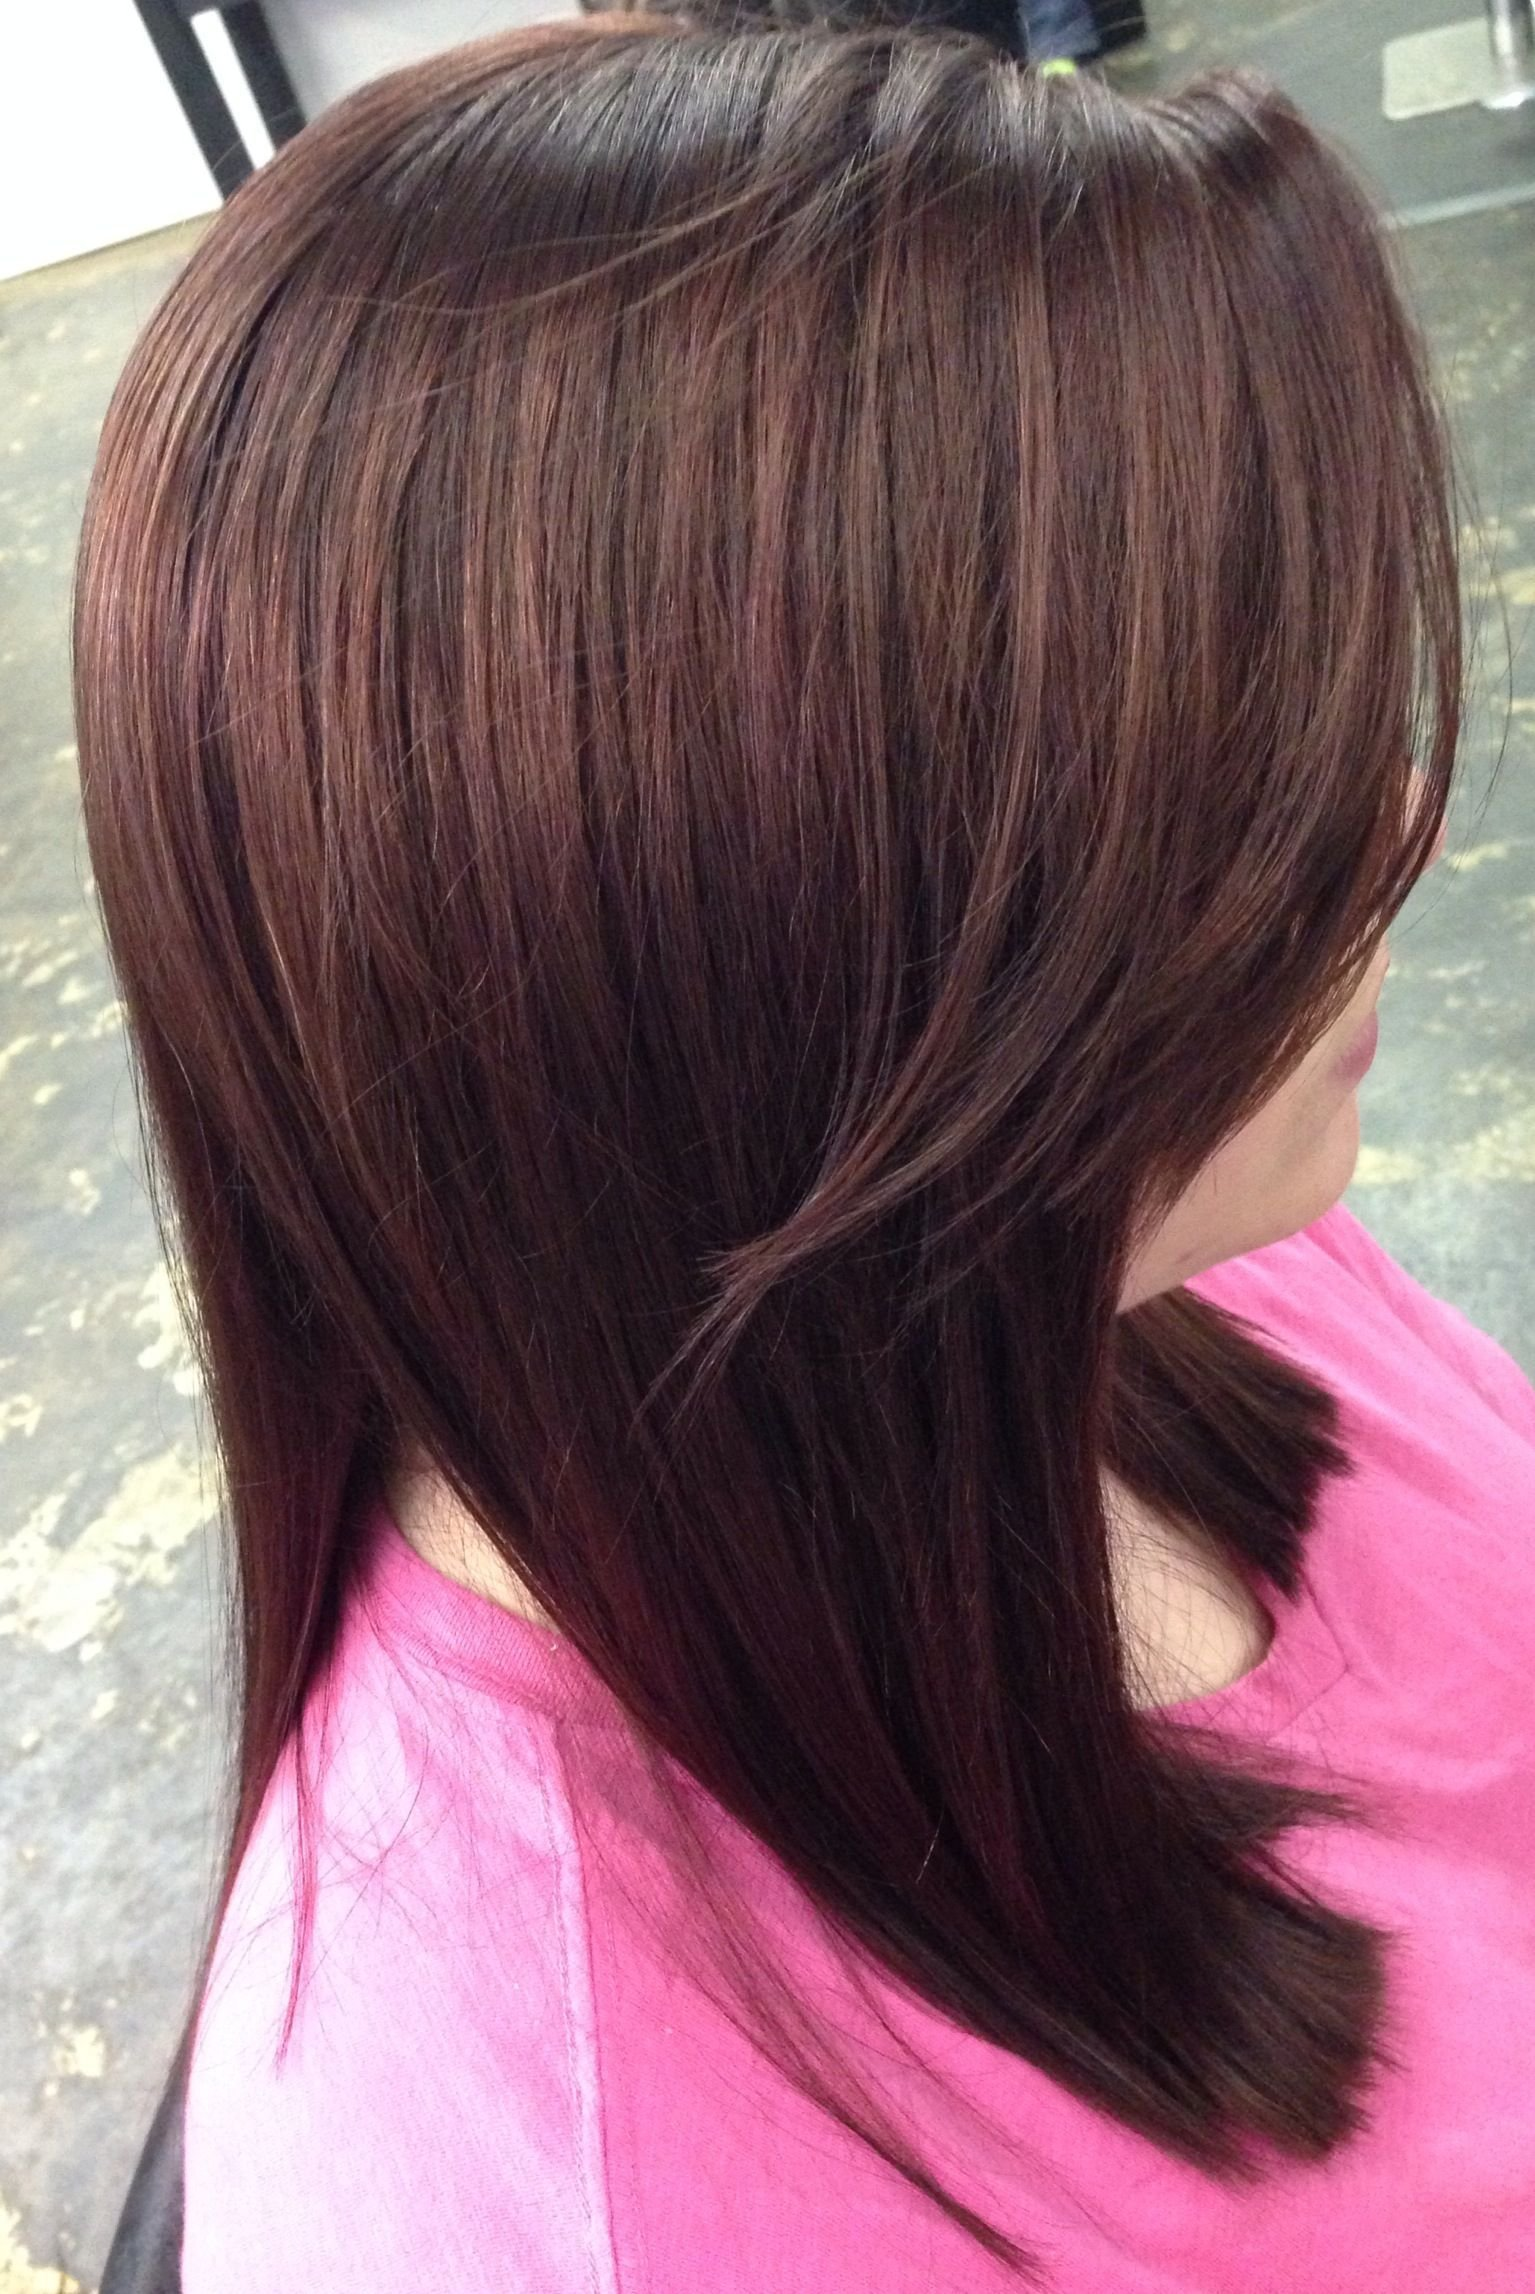 New Rich Cherry Cola Color Hair Beauty Pinterest Ideas With Pictures